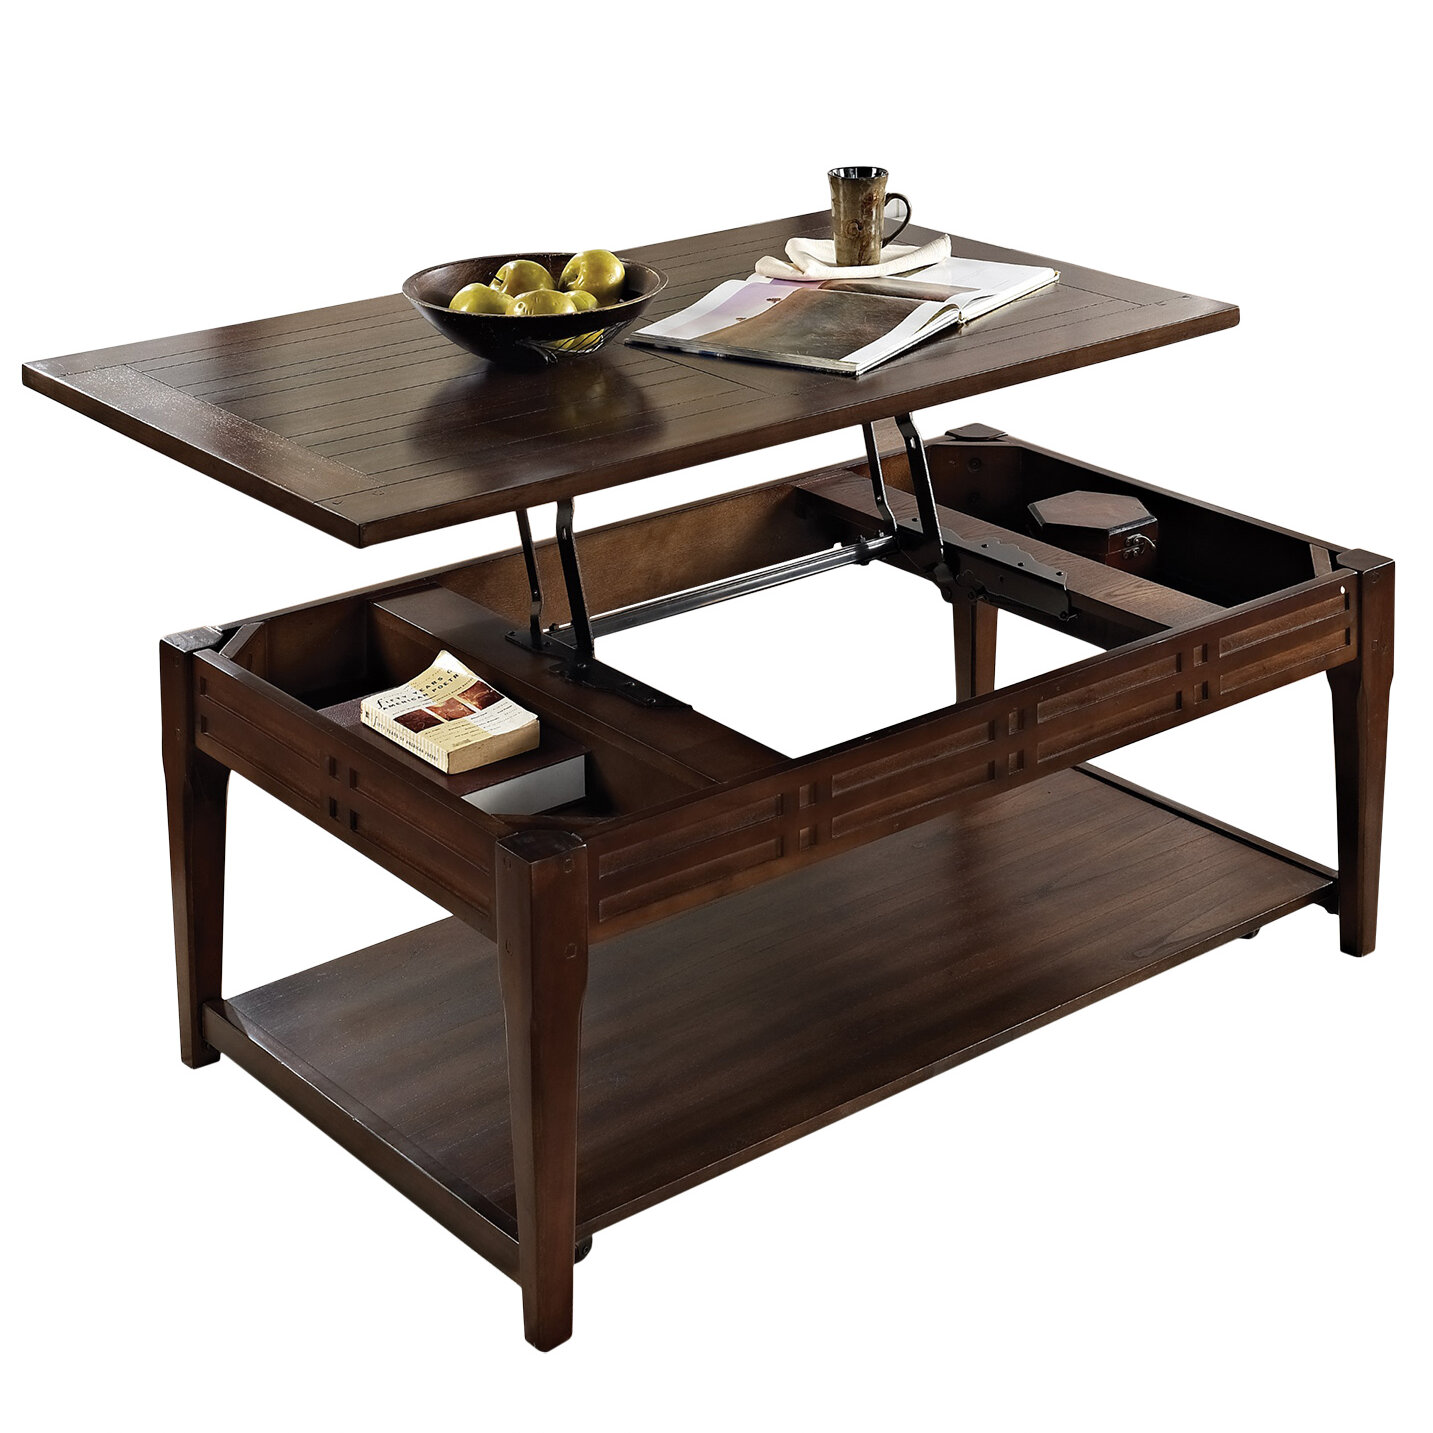 plans lift modern with space designs sebring taffette table double top extra coffee